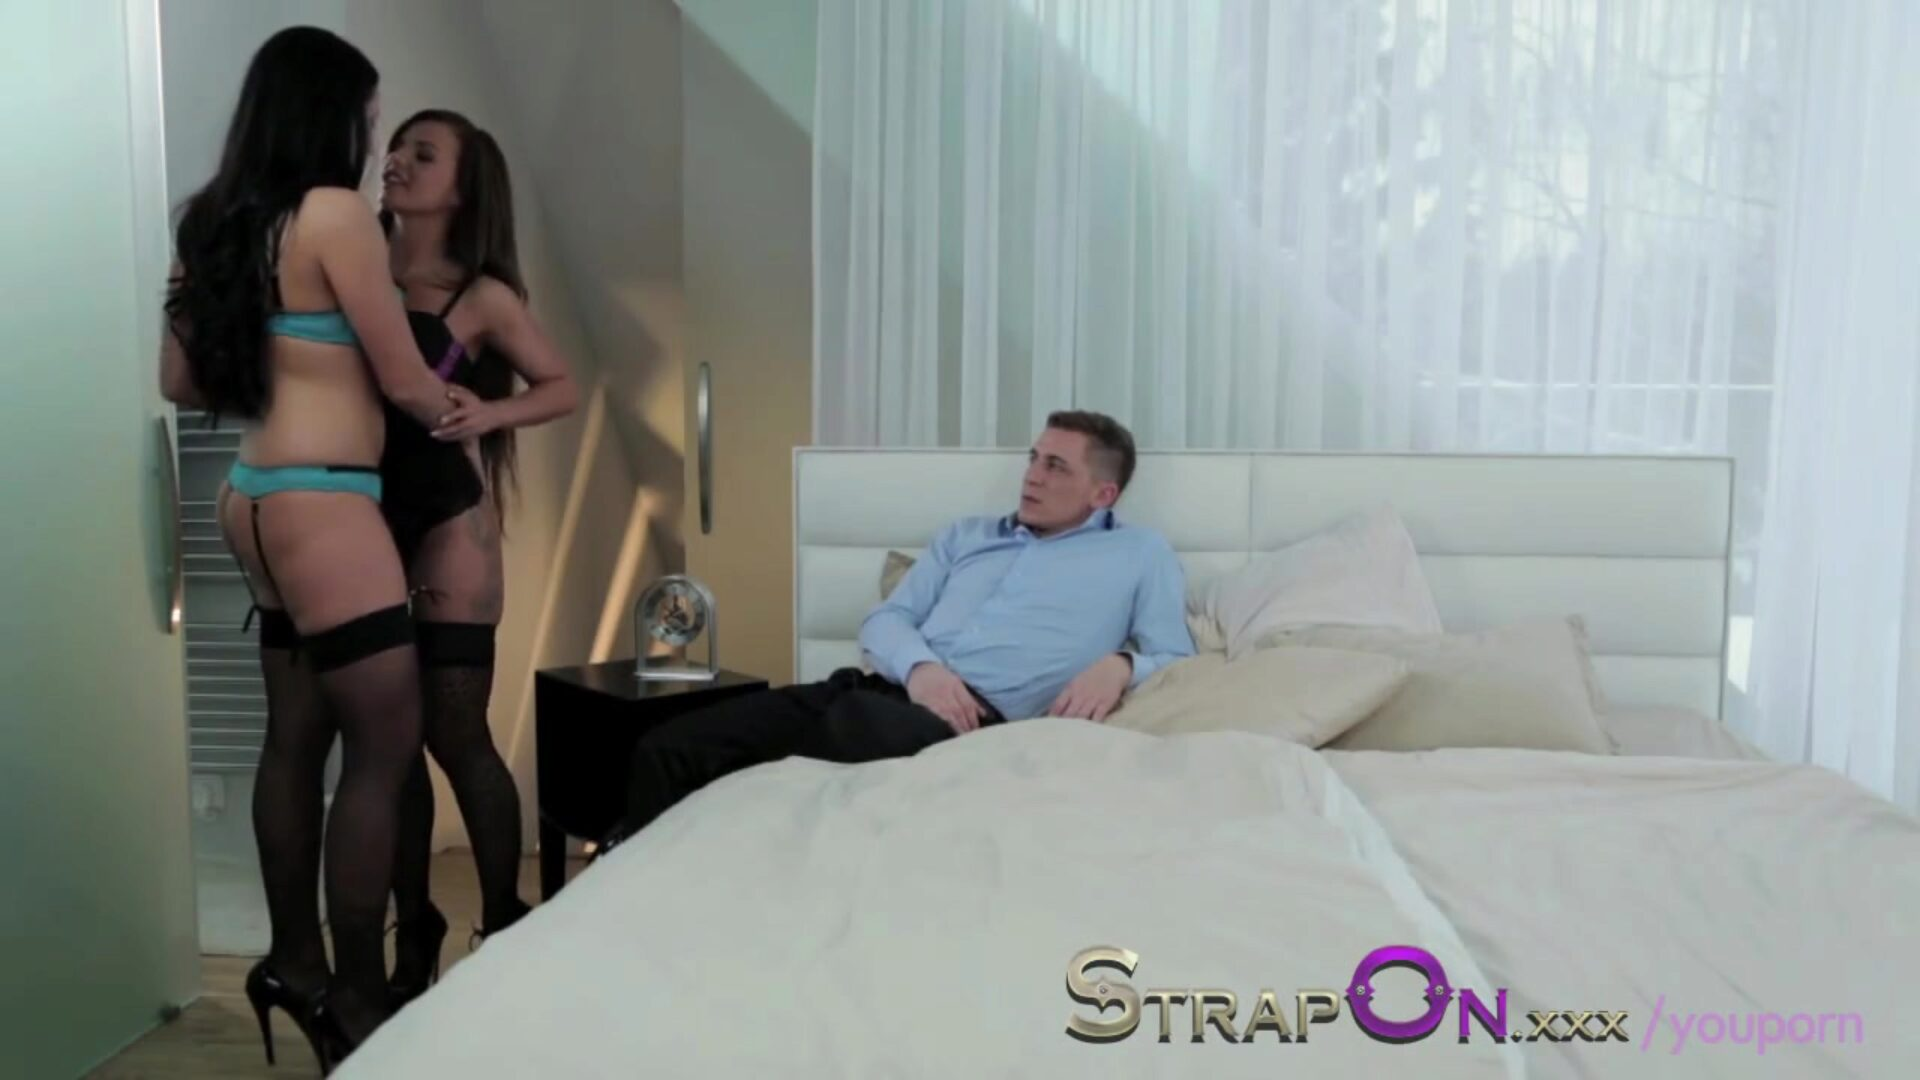 StrapOn She gets one as well as the other fuck holes fucked by chap and bisex gal StrapOn She receives one as well as the other slots banged by boy and bi-sexual girl